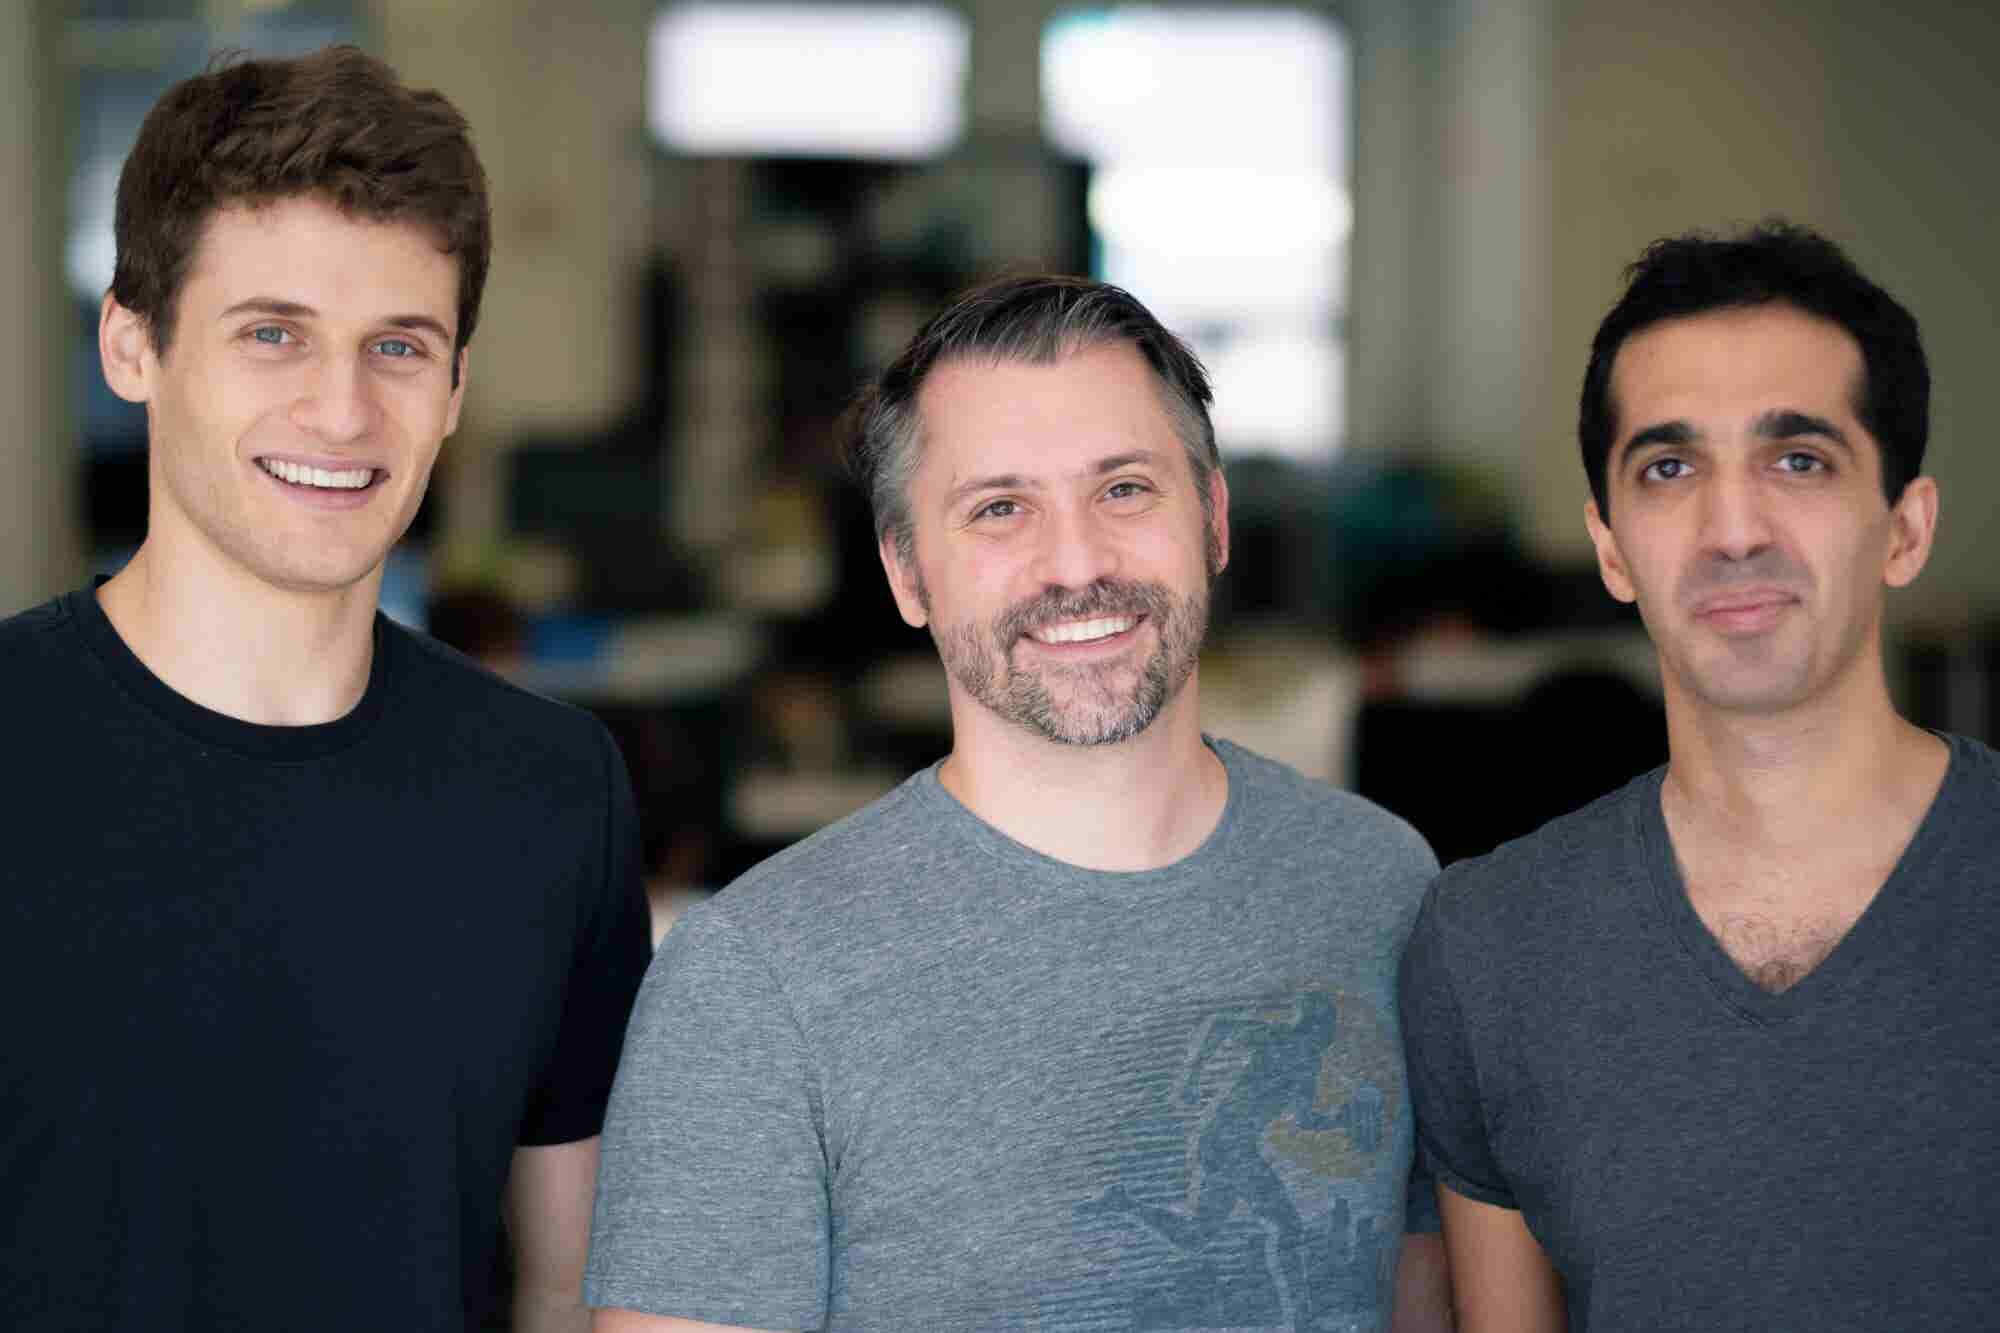 How The Founders of This Healthcare Startup Raised More Than $91M Thei...